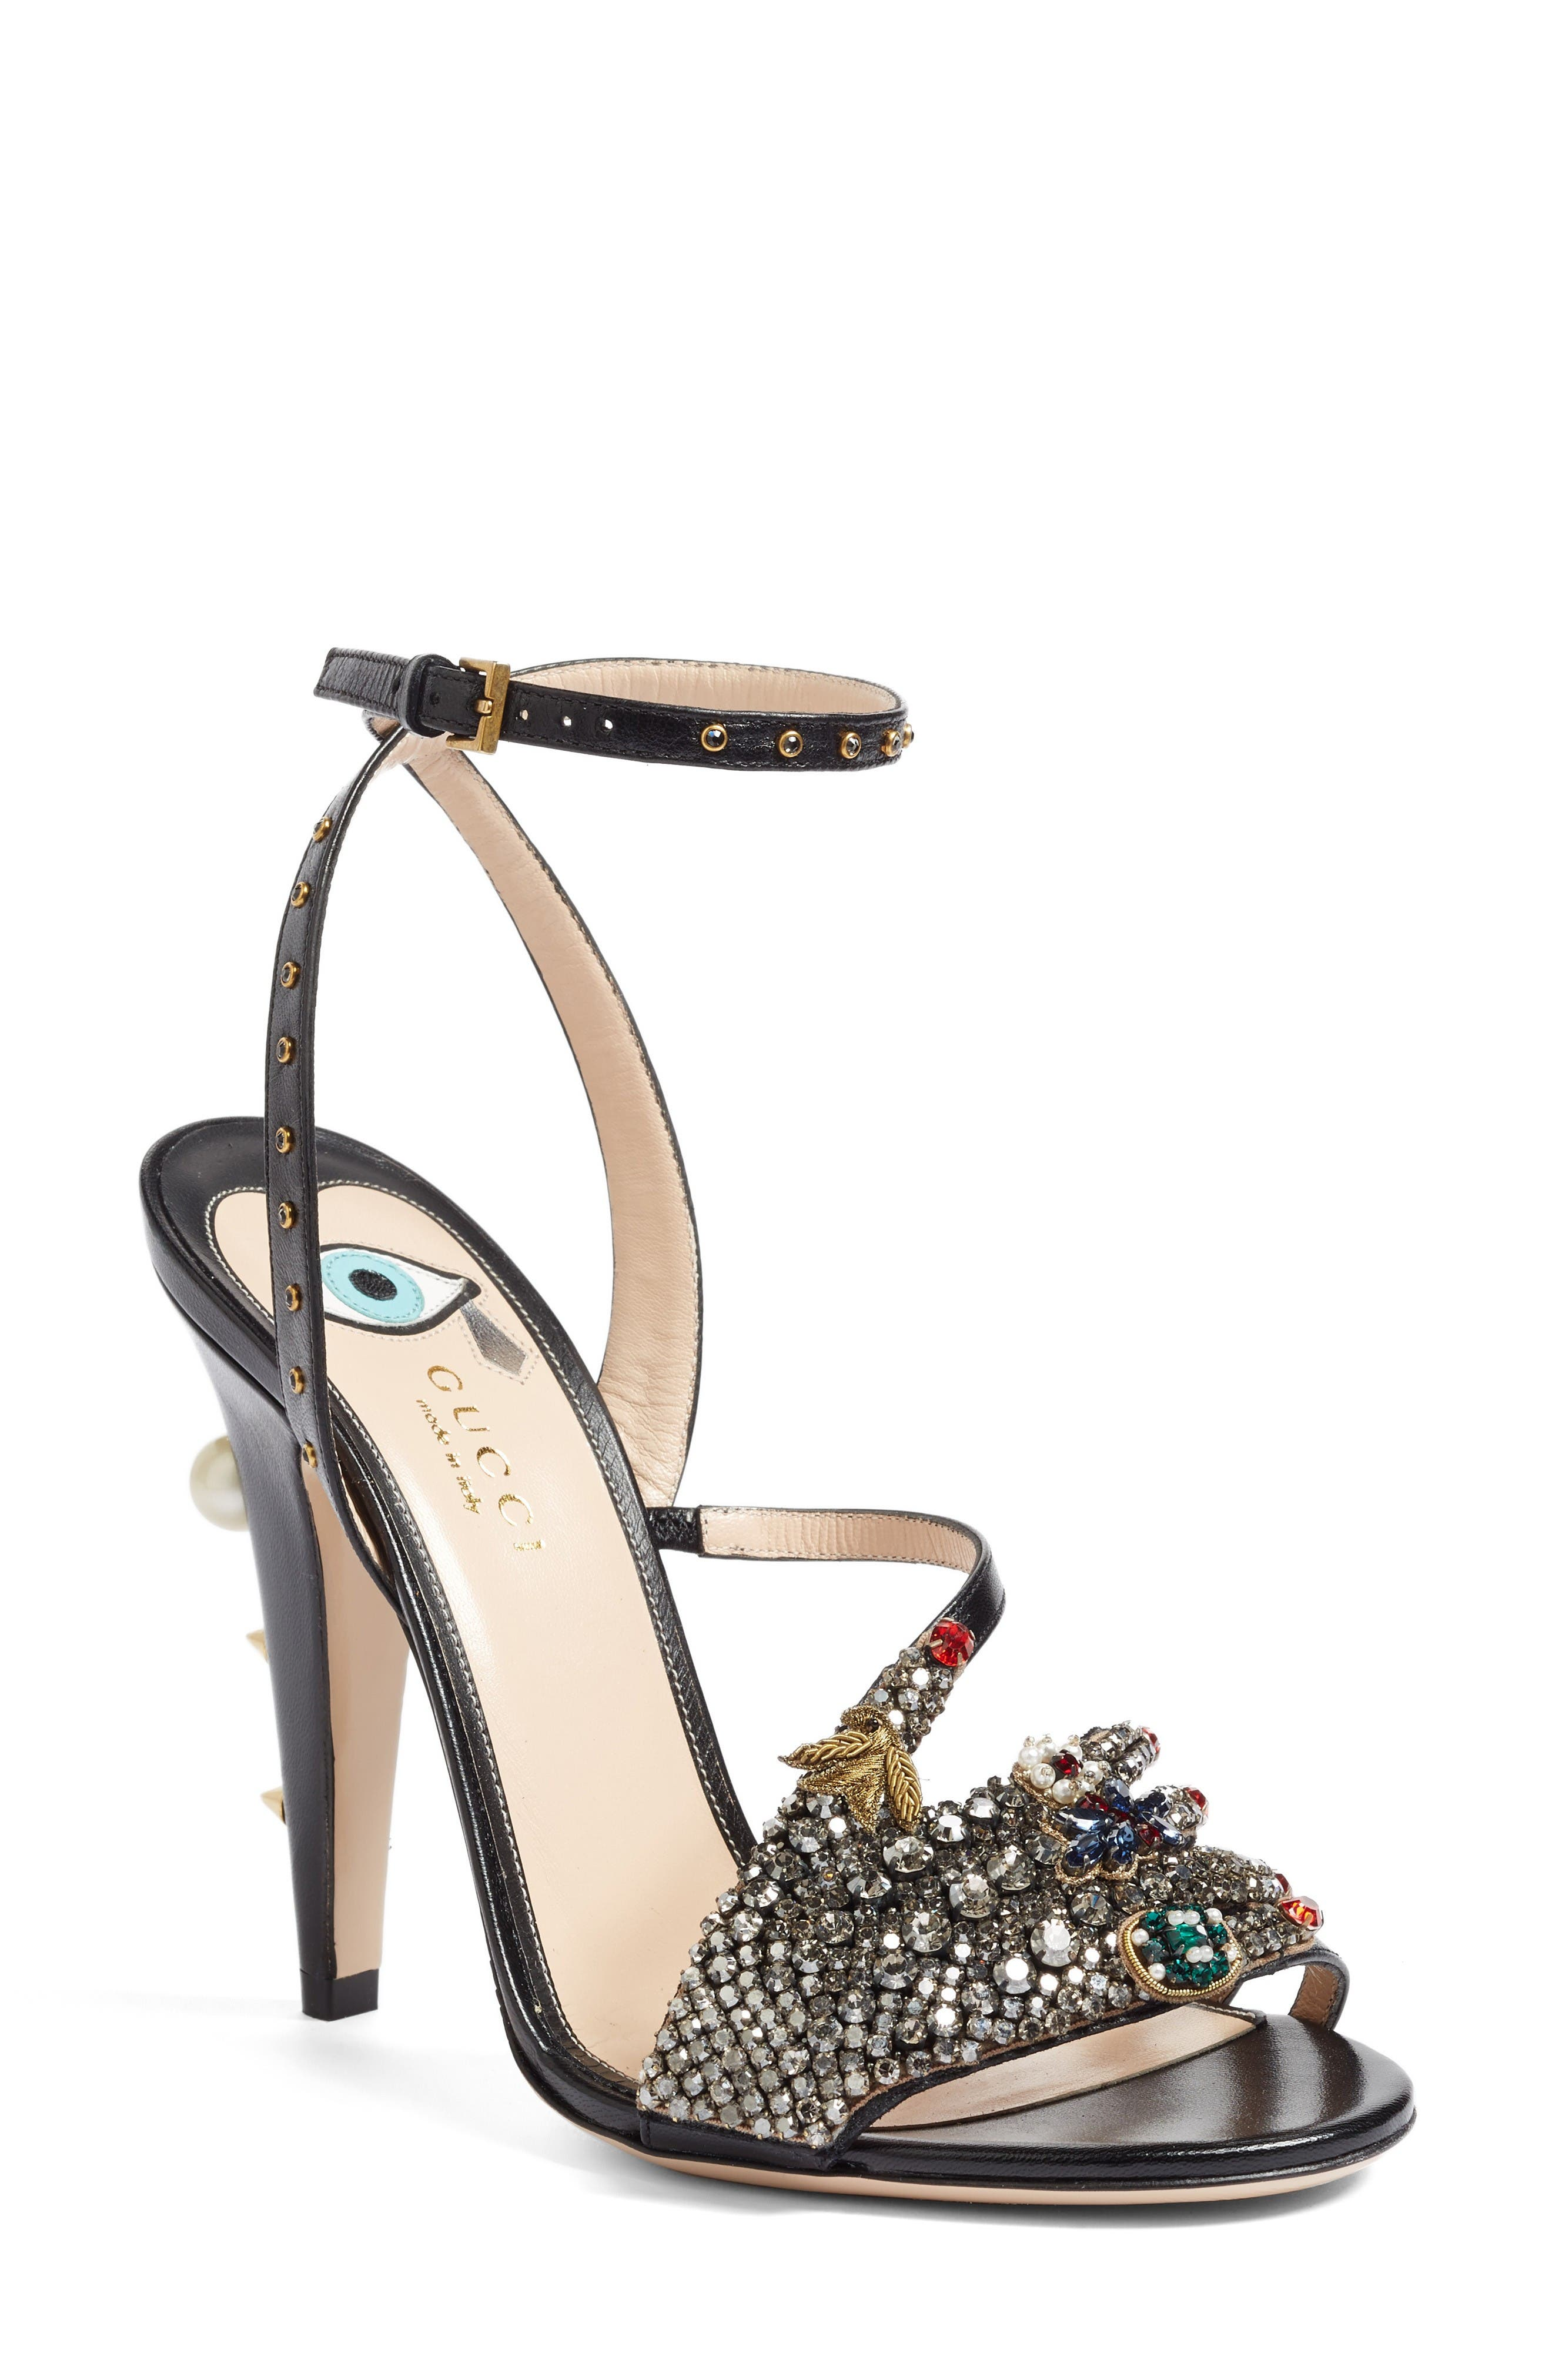 Alternate Image 1 Selected - Gucci Strappy Sandal (Women)